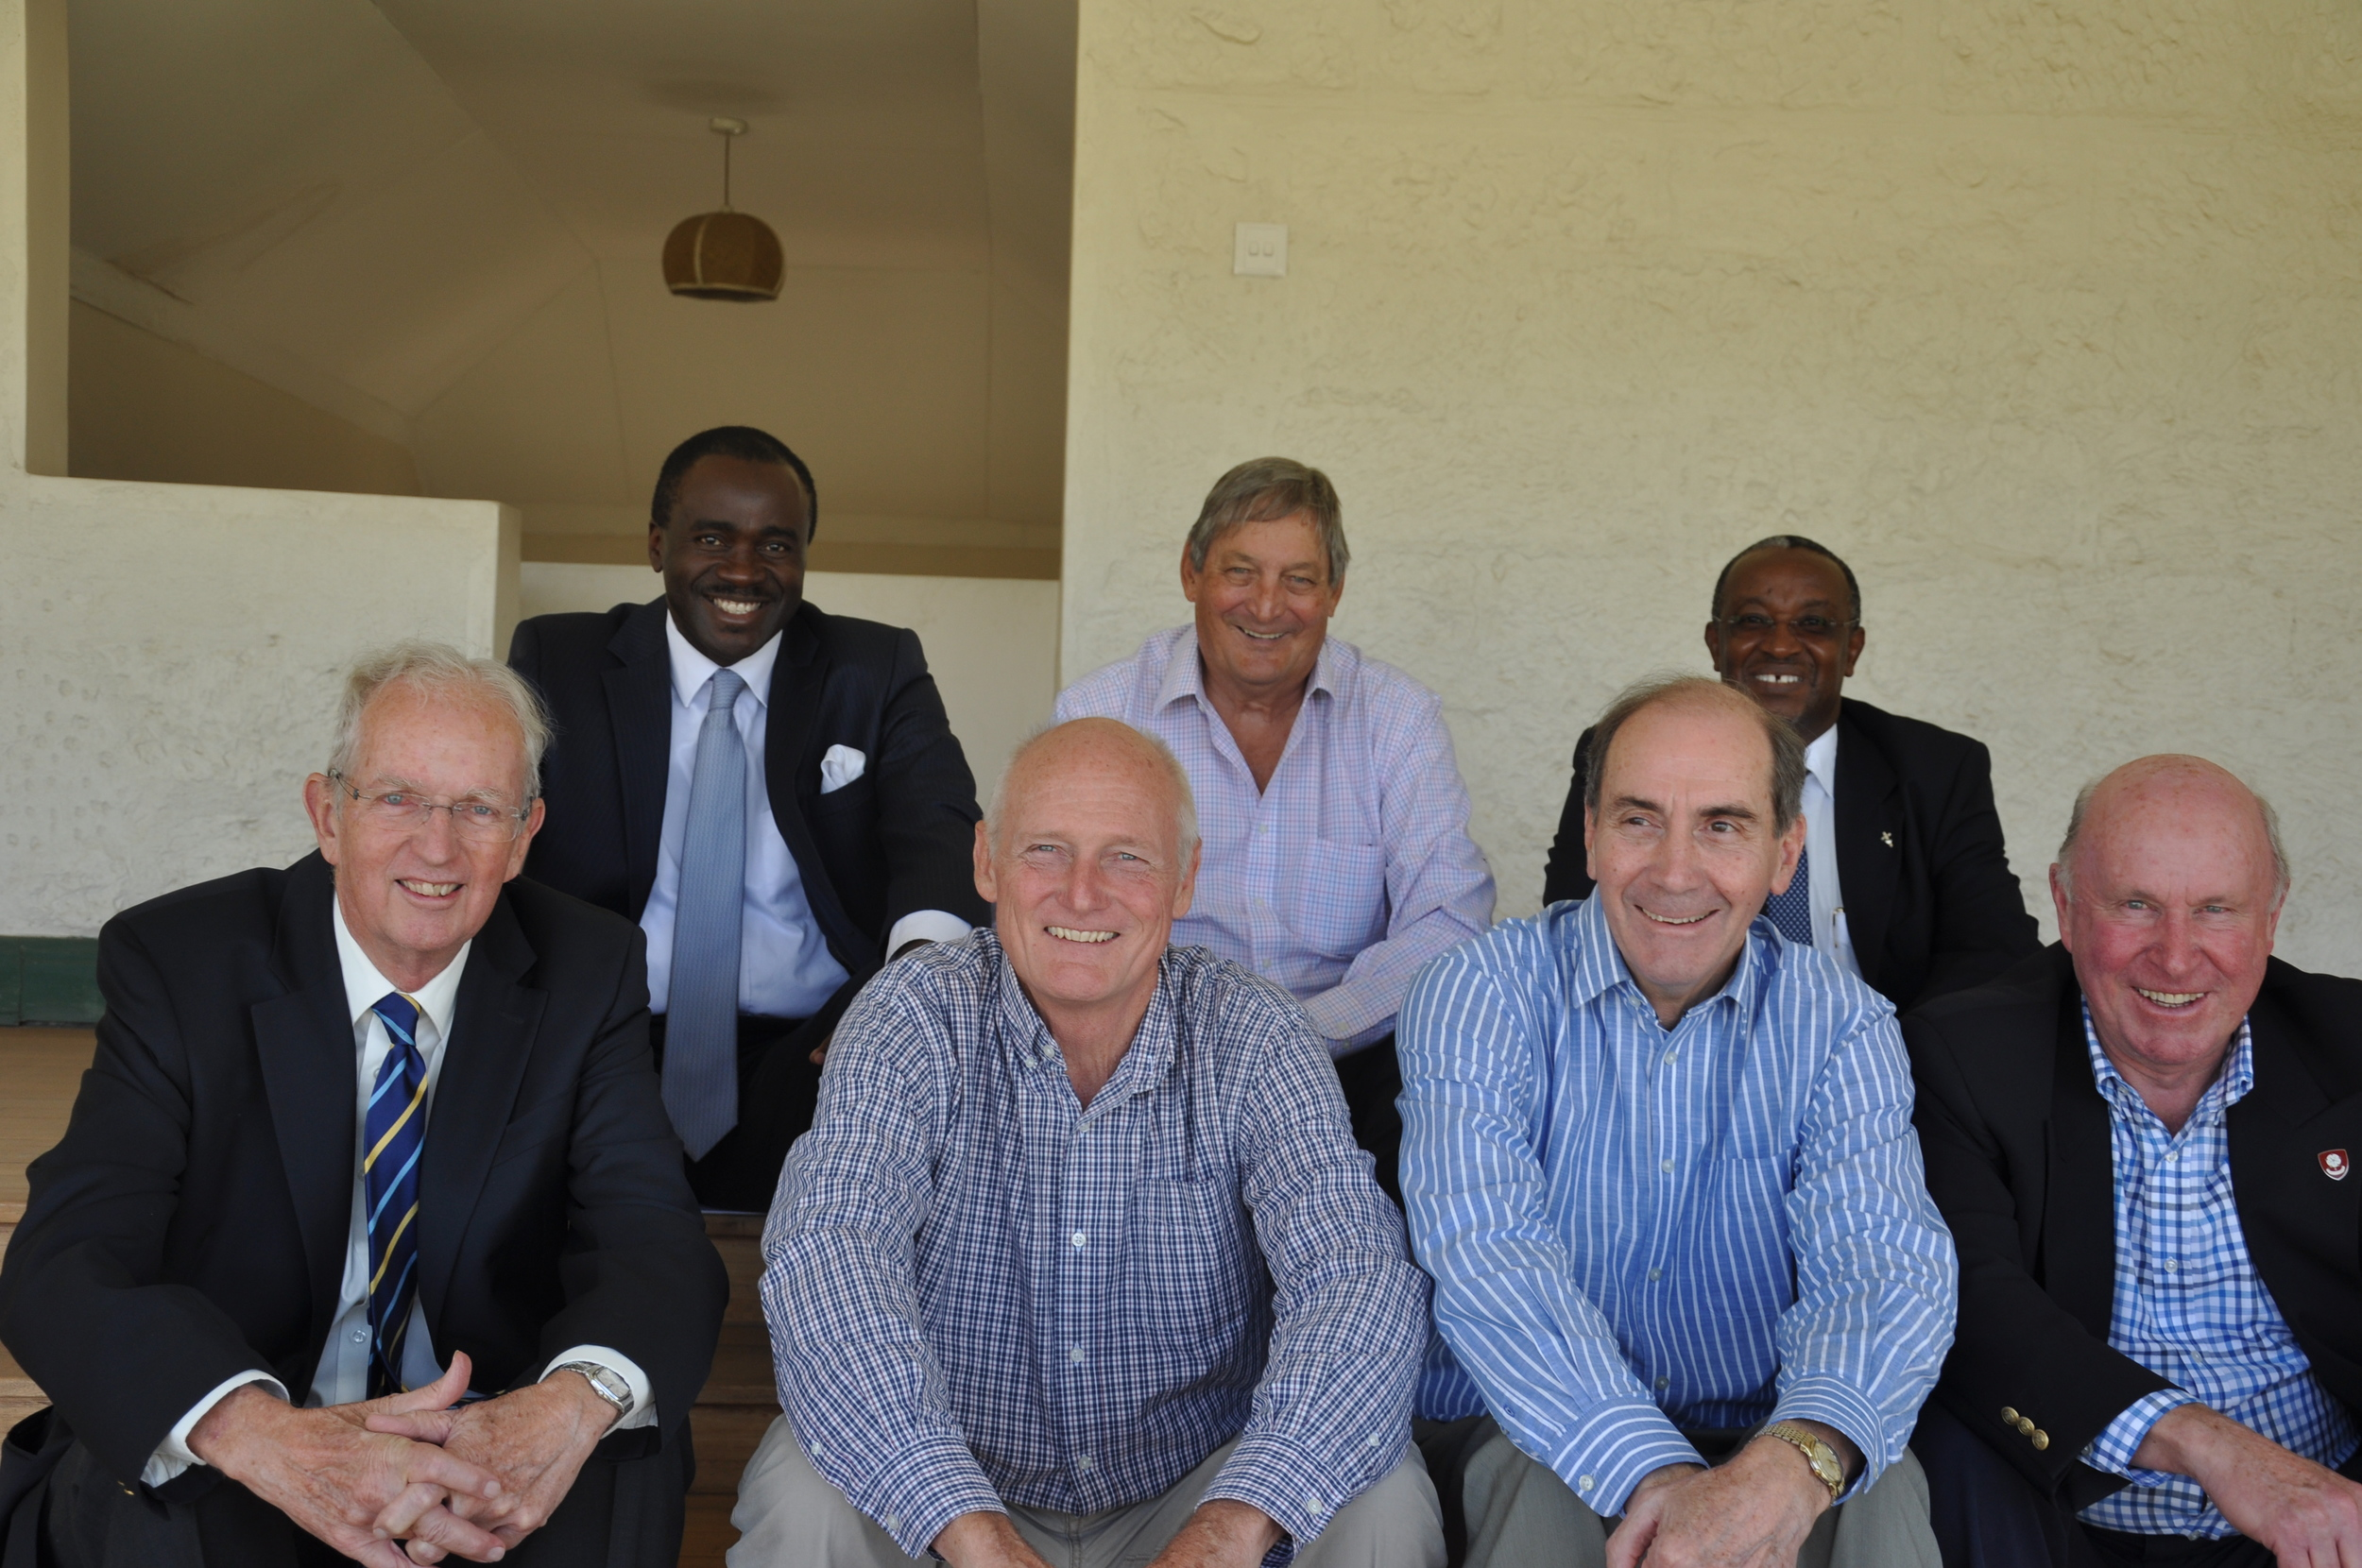 Prior to the meeting with the Headmaster, the Trustees of the Msaada Trust had met at the Nairobi Club to confirm their approach to the school. From the left; Gayling May, Chacha Odera, Ronnie Andrews. Jonny Havelock, Nigel Gaymer, Peter Gachuhi, John O'Grady. Dr Robin Mogere had also attended the meeting, but was called away to attend an emergency operation before this photograph was taken.